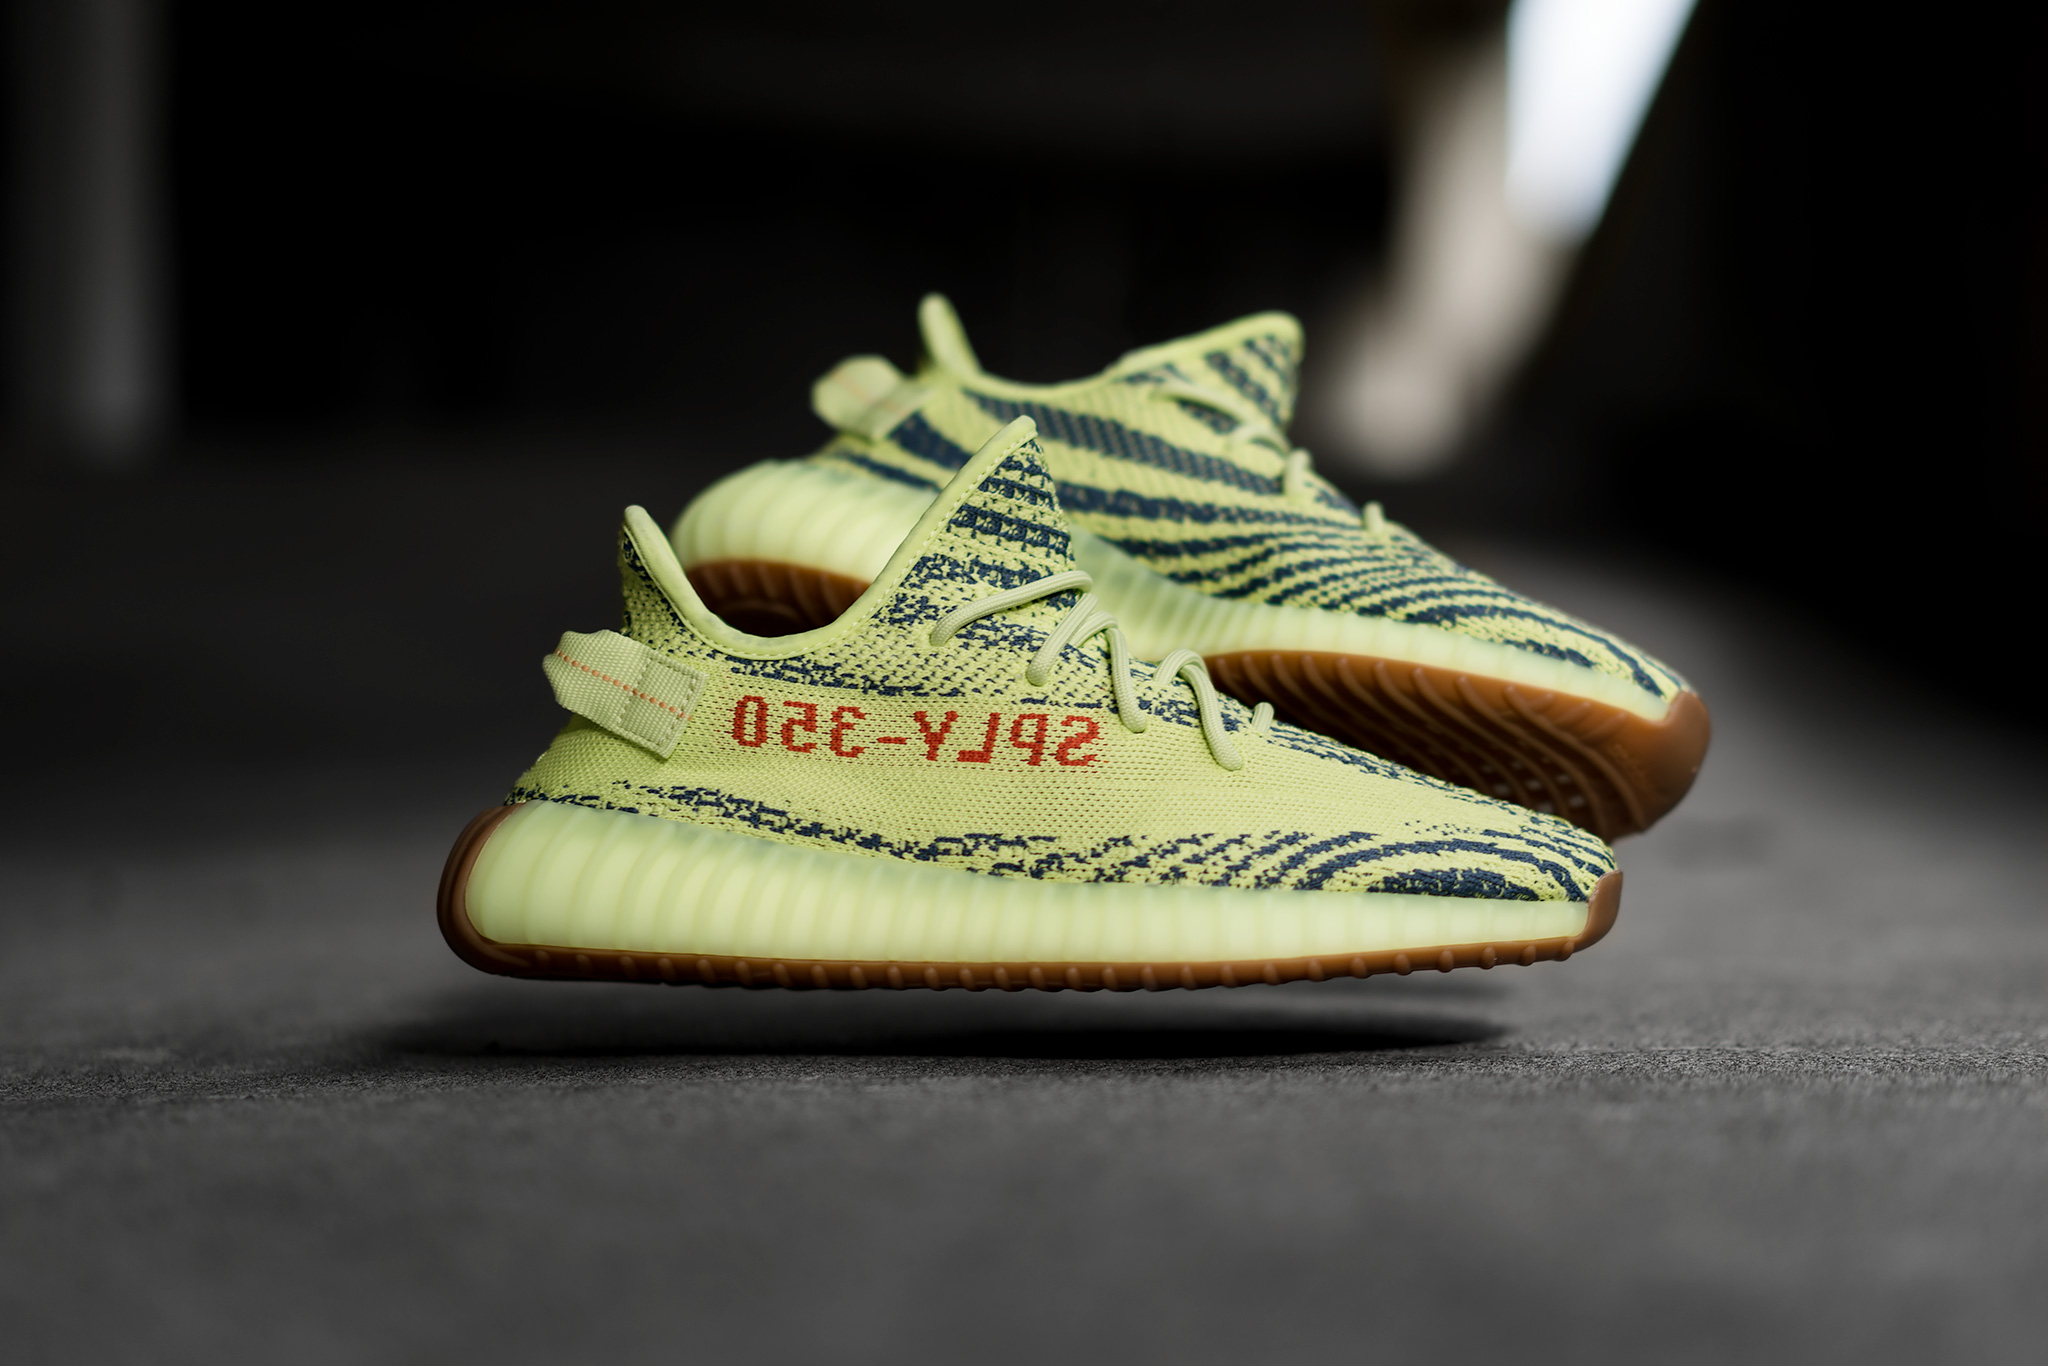 773813b54d5 The latest footwear offerings from Kanye West s partnership with adidas is  set to release at HAVEN on November 18th. Featuring the 3 stripes  proprietary ...